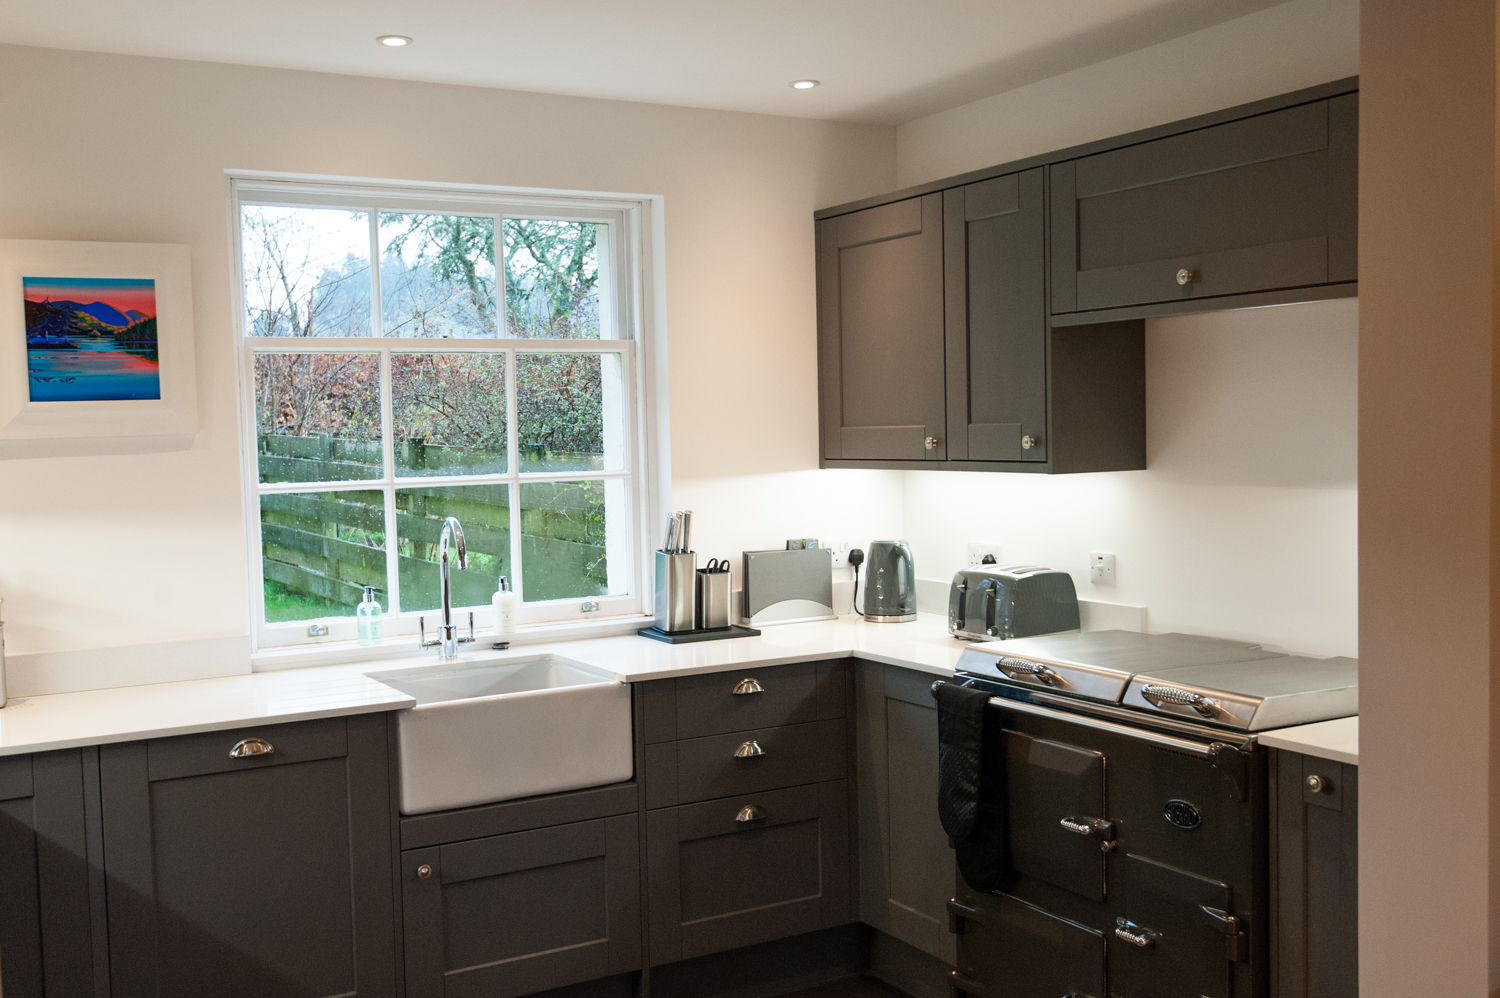 The kitchen at Parkside self catering, Dochgarroch near Inverness